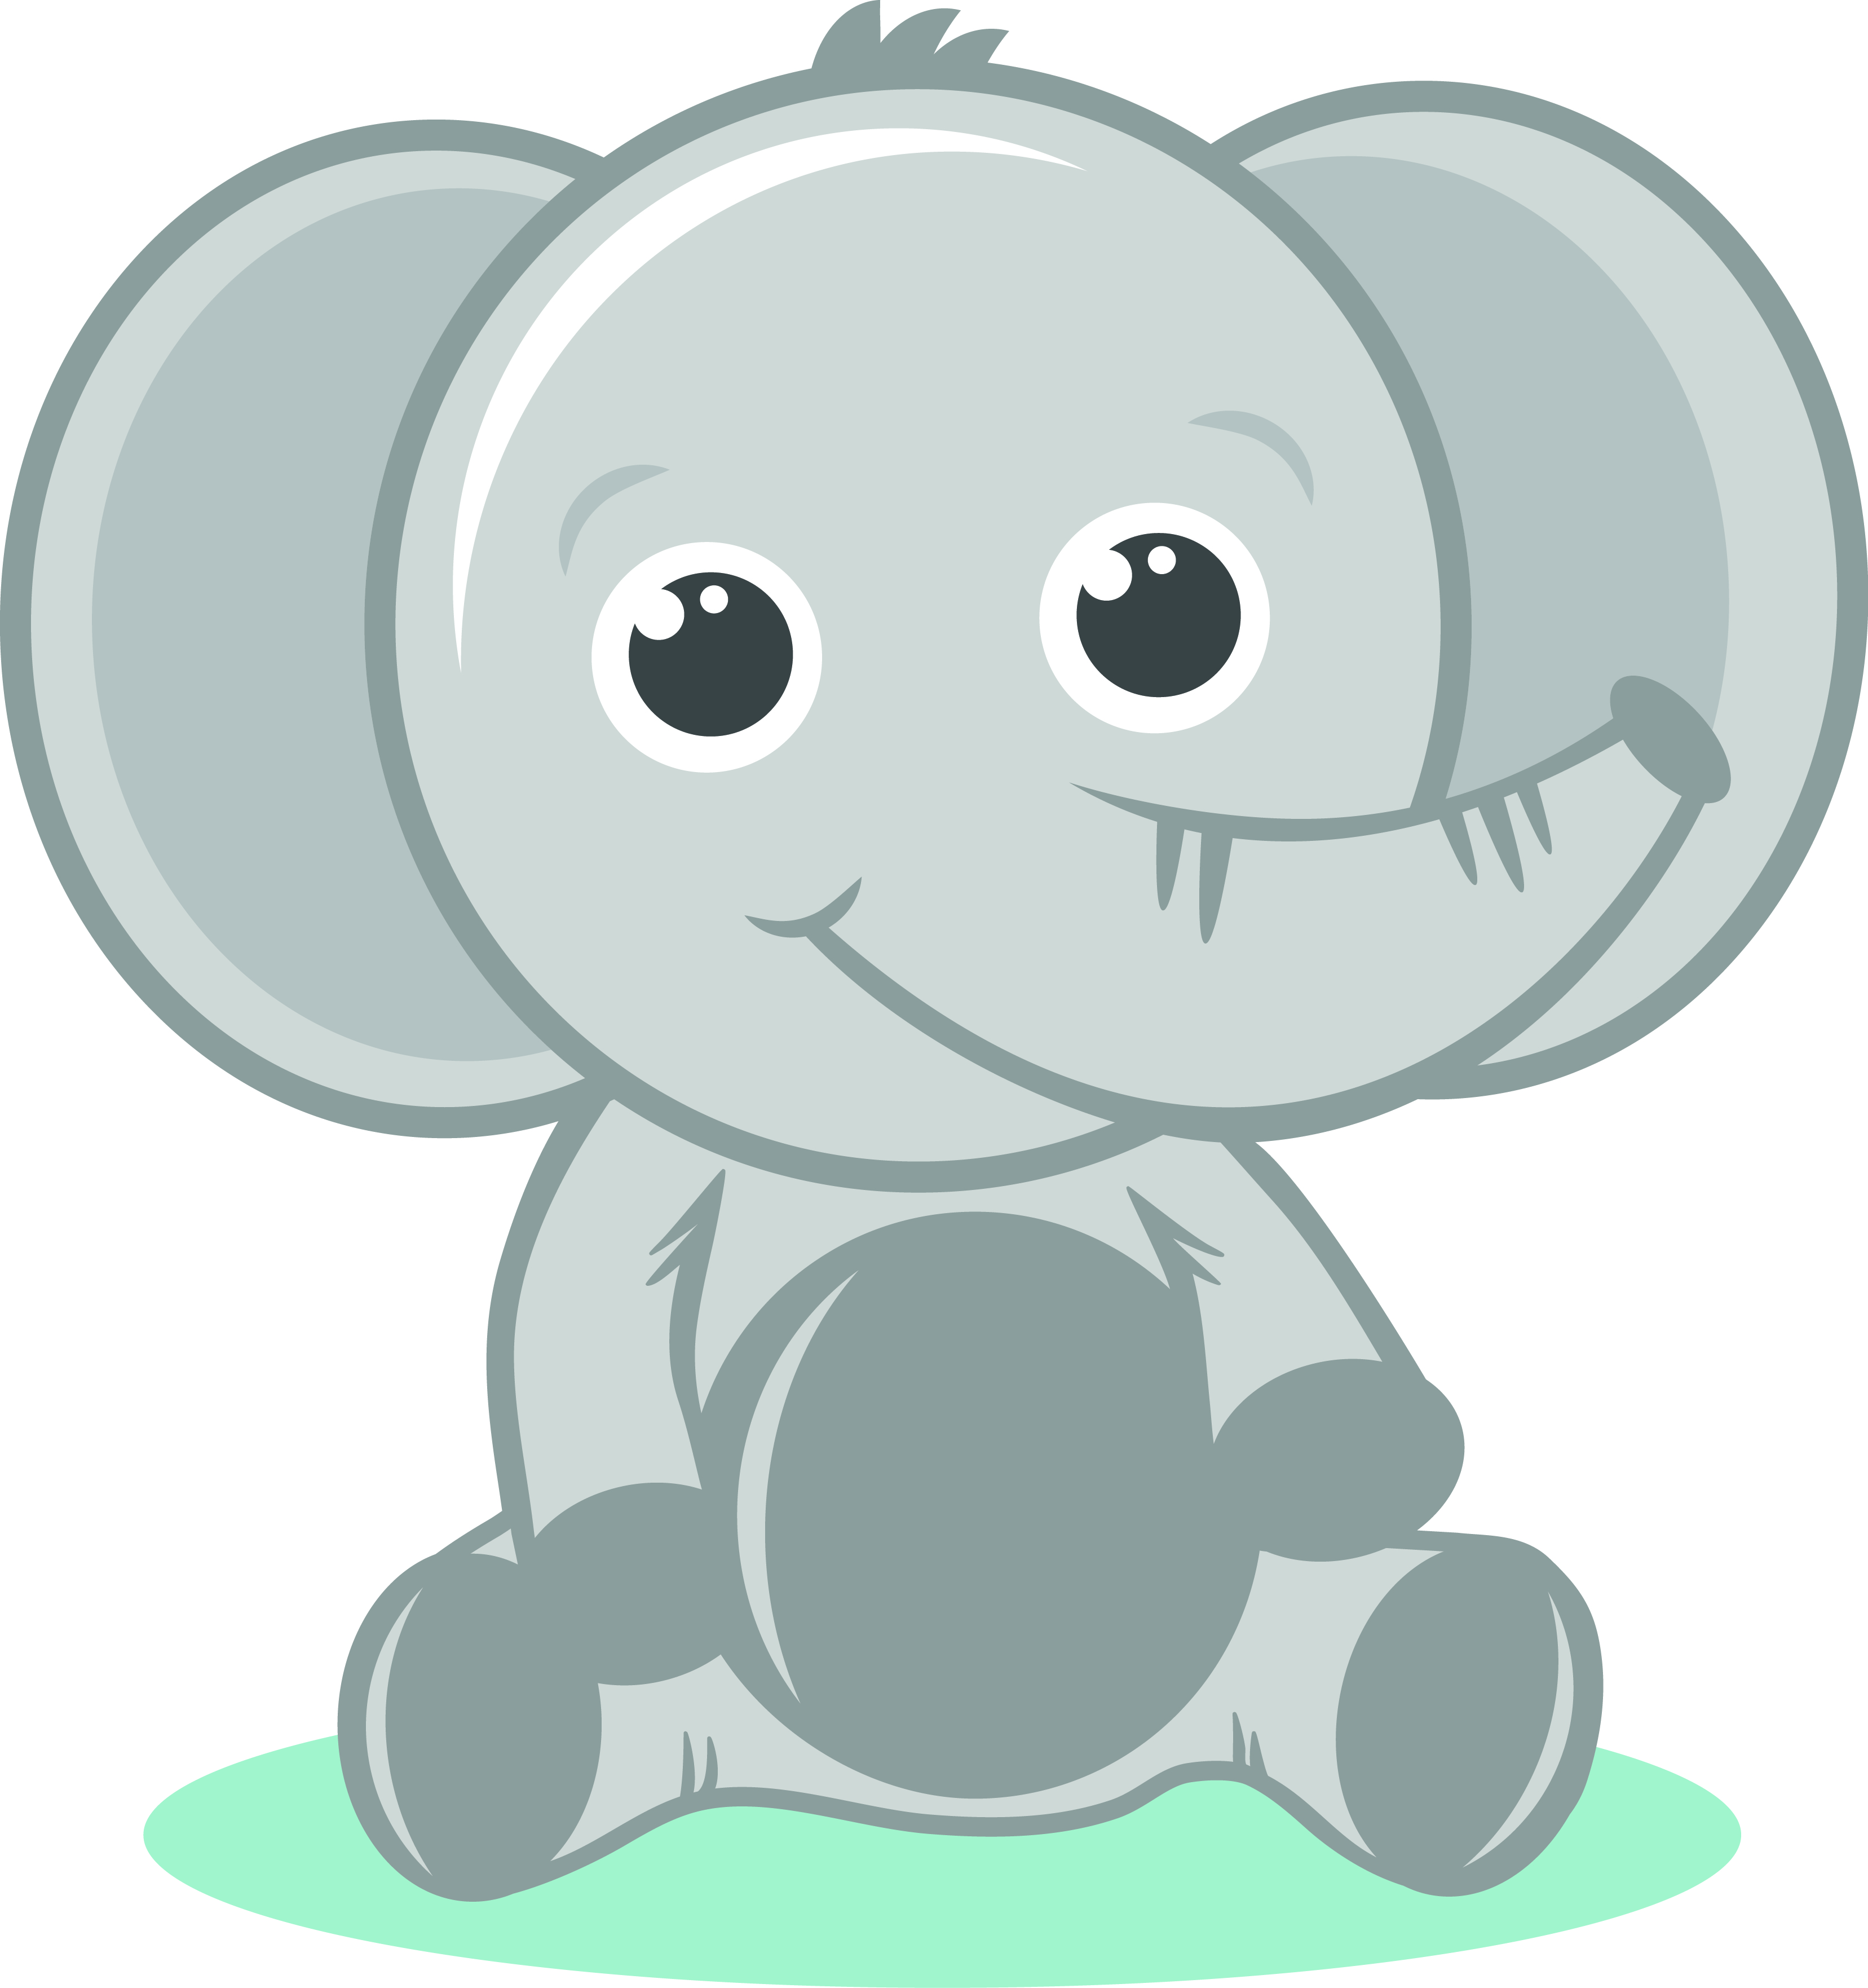 Elephant clip art transparent background. Gray baby png images